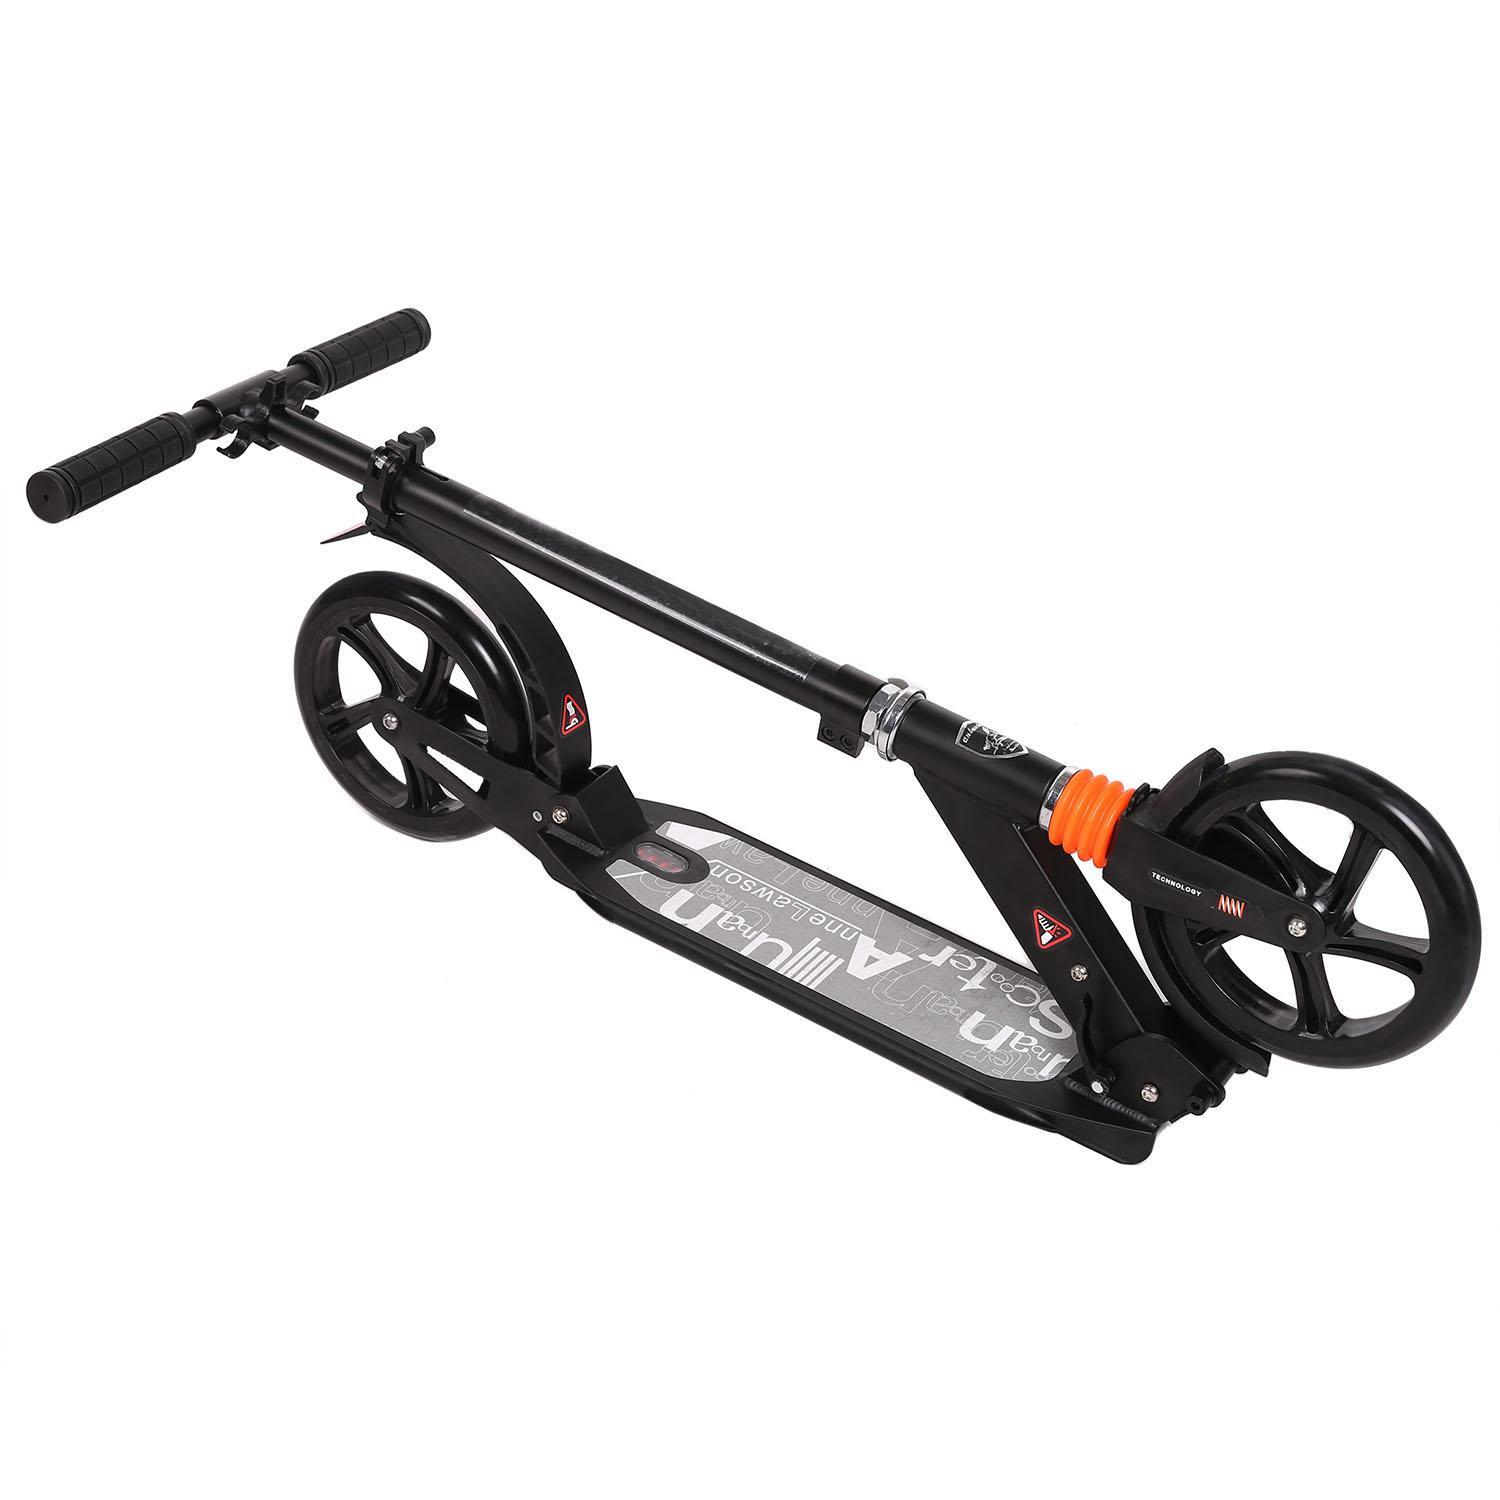 Scooter Sturdy Lightweight Height Adjustable Aluminum Alloy T-Style Foldable Design Adults 2